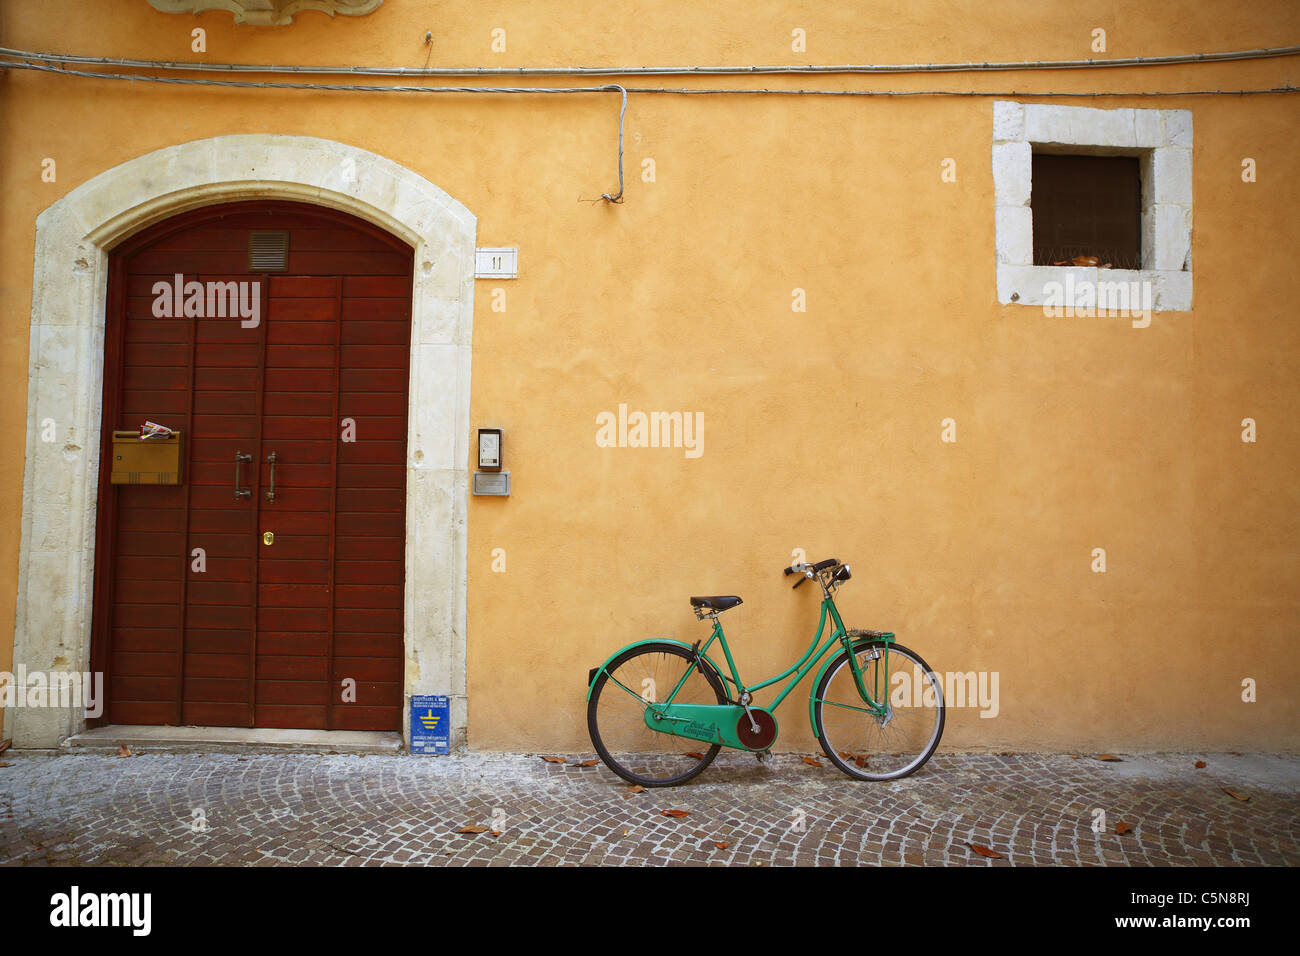 Green bicycle lent against a yellow ochre wall in Italy. - Stock Image